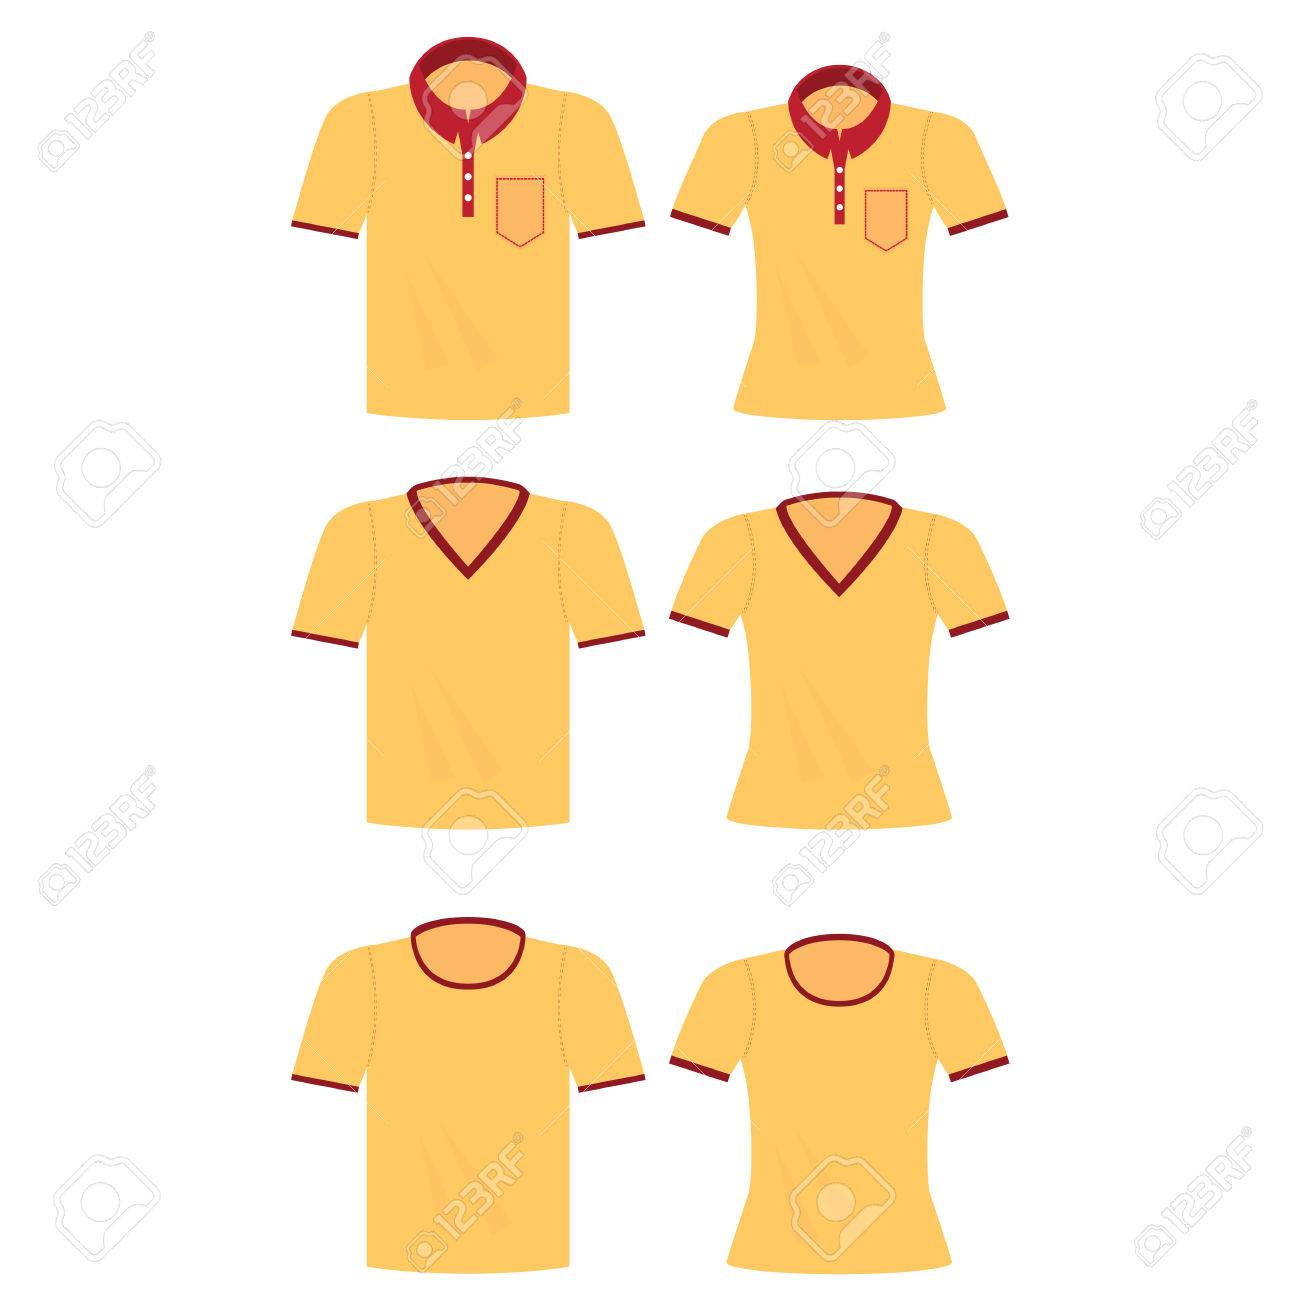 f40af61f9c Yellow shirt for men and women, Polo shirts template, T-shirts, fashion